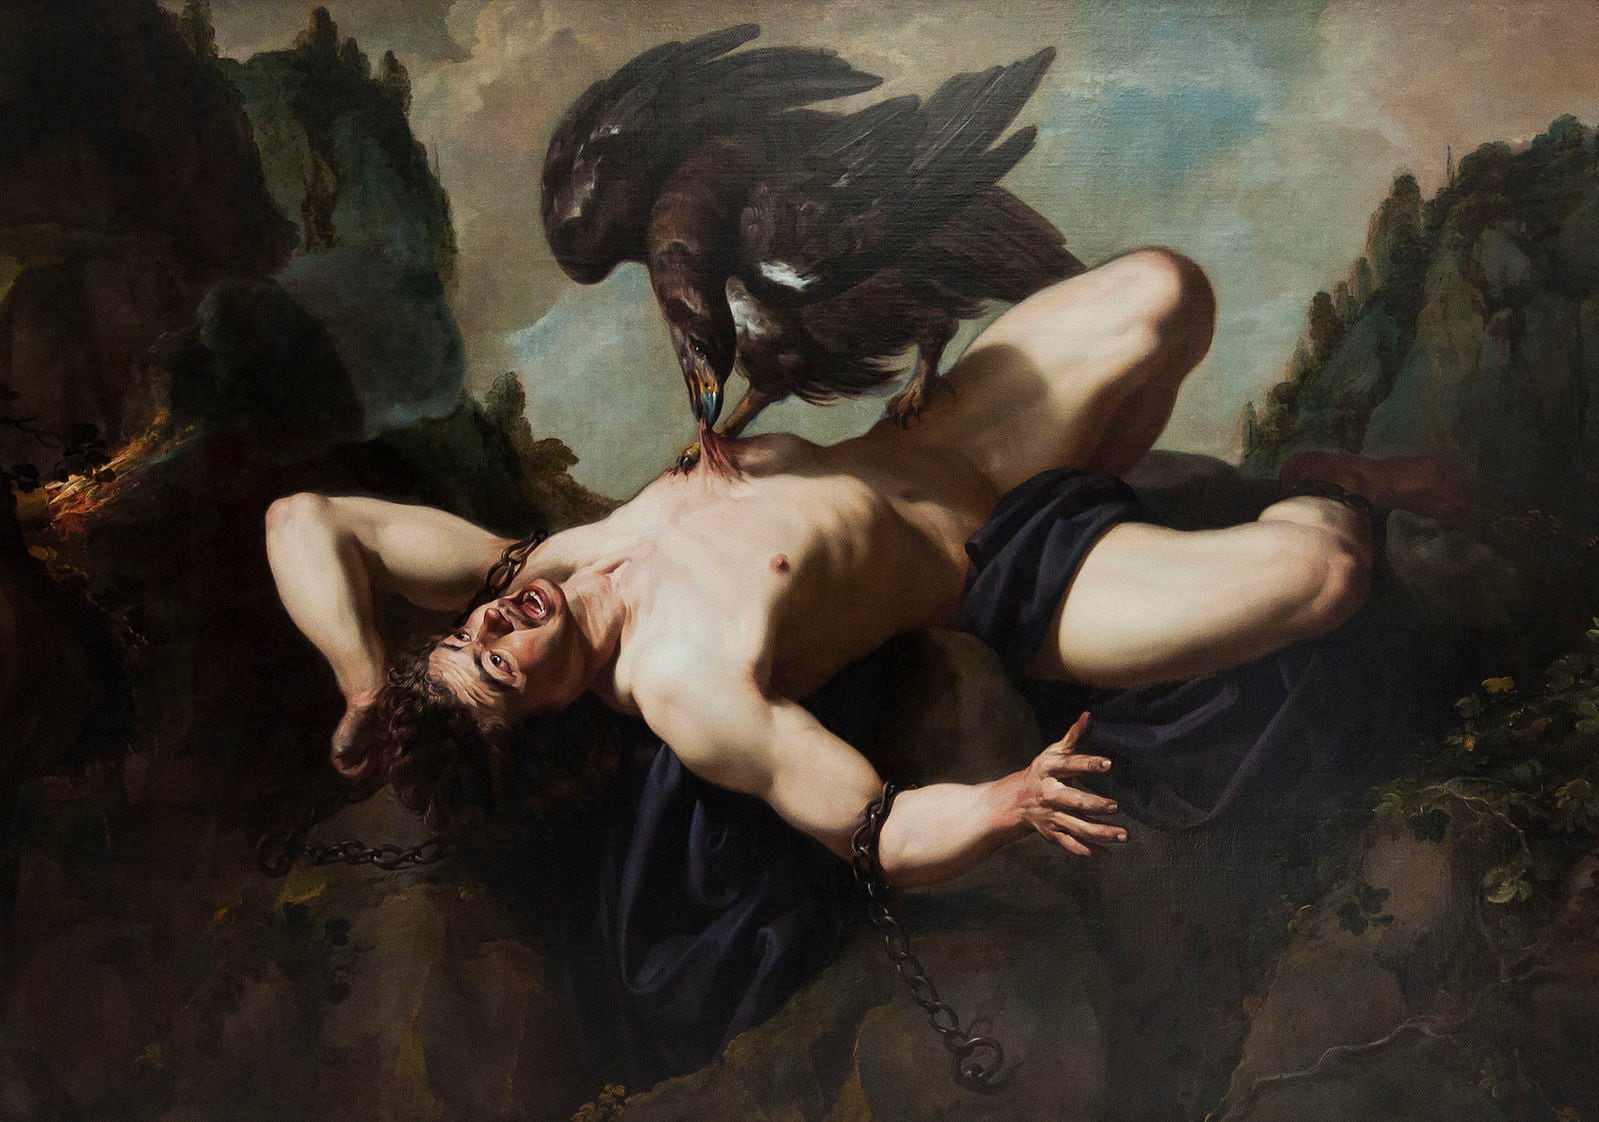 Prometheus and the eagle, by Theodoor Rombouts (1597-1637).